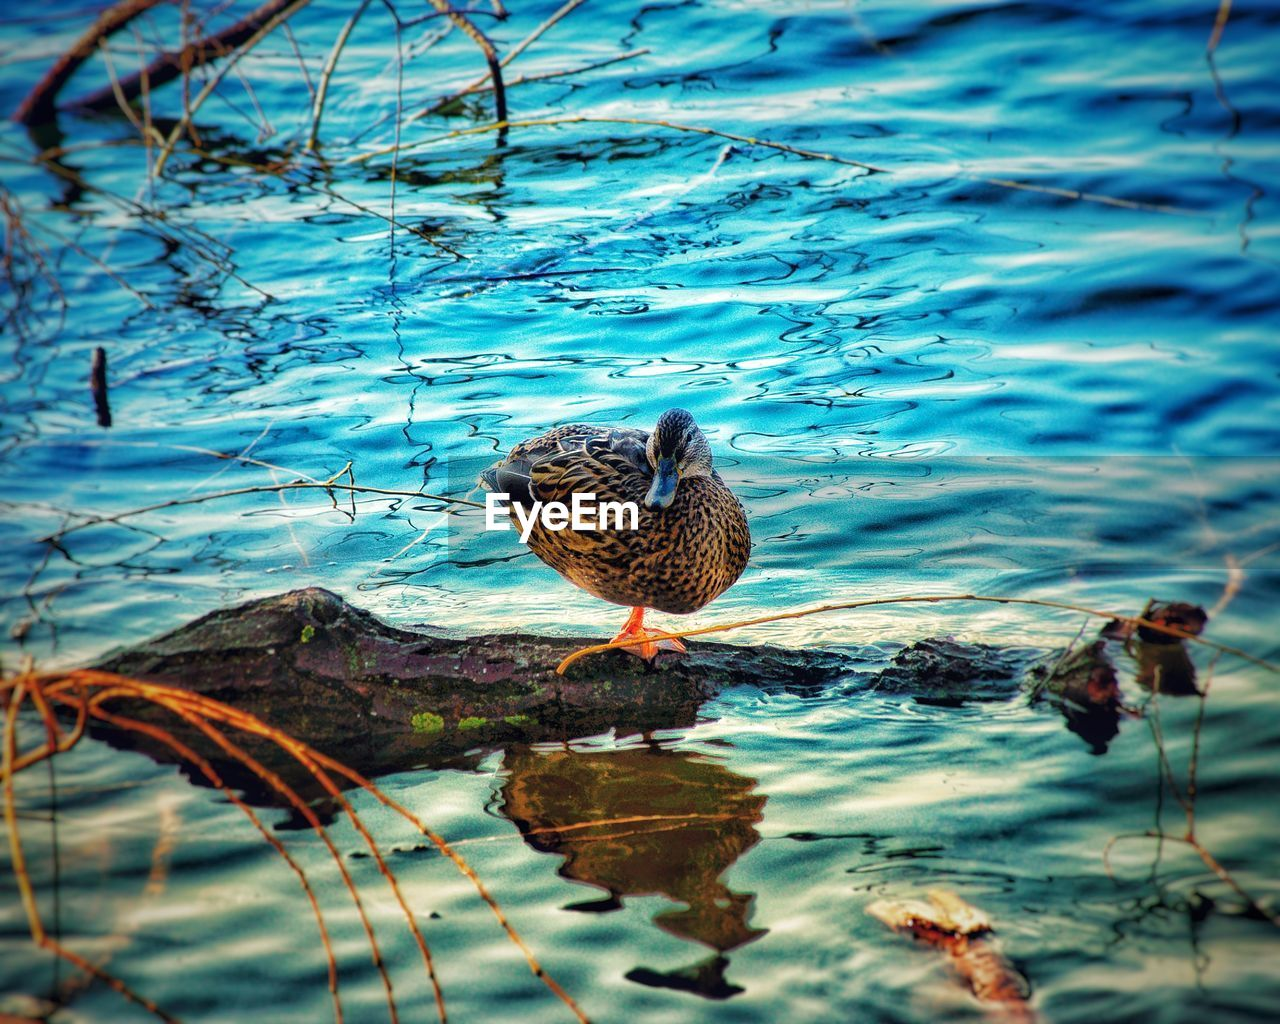 animal themes, animal, water, animal wildlife, vertebrate, animals in the wild, bird, one animal, lake, duck, nature, poultry, day, reflection, no people, perching, mallard duck, water bird, beauty in nature